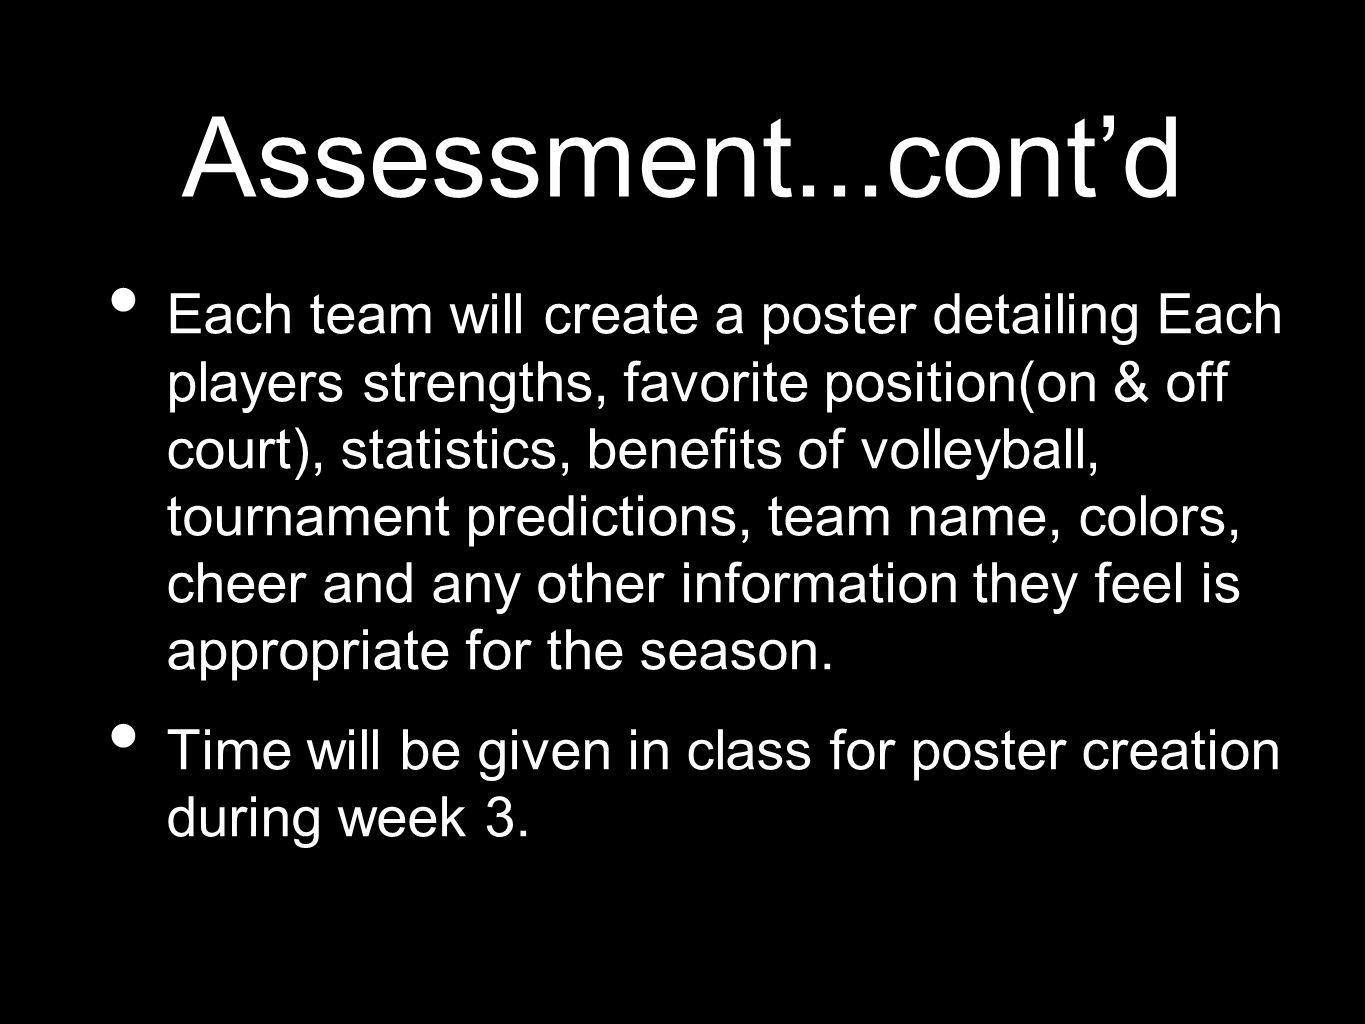 Assessment...contd Each team will create a poster detailing Each players strengths, favorite position(on & off court), statistics, benefits of volleyball, tournament predictions, team name, colors, cheer and any other information they feel is appropriate for the season.